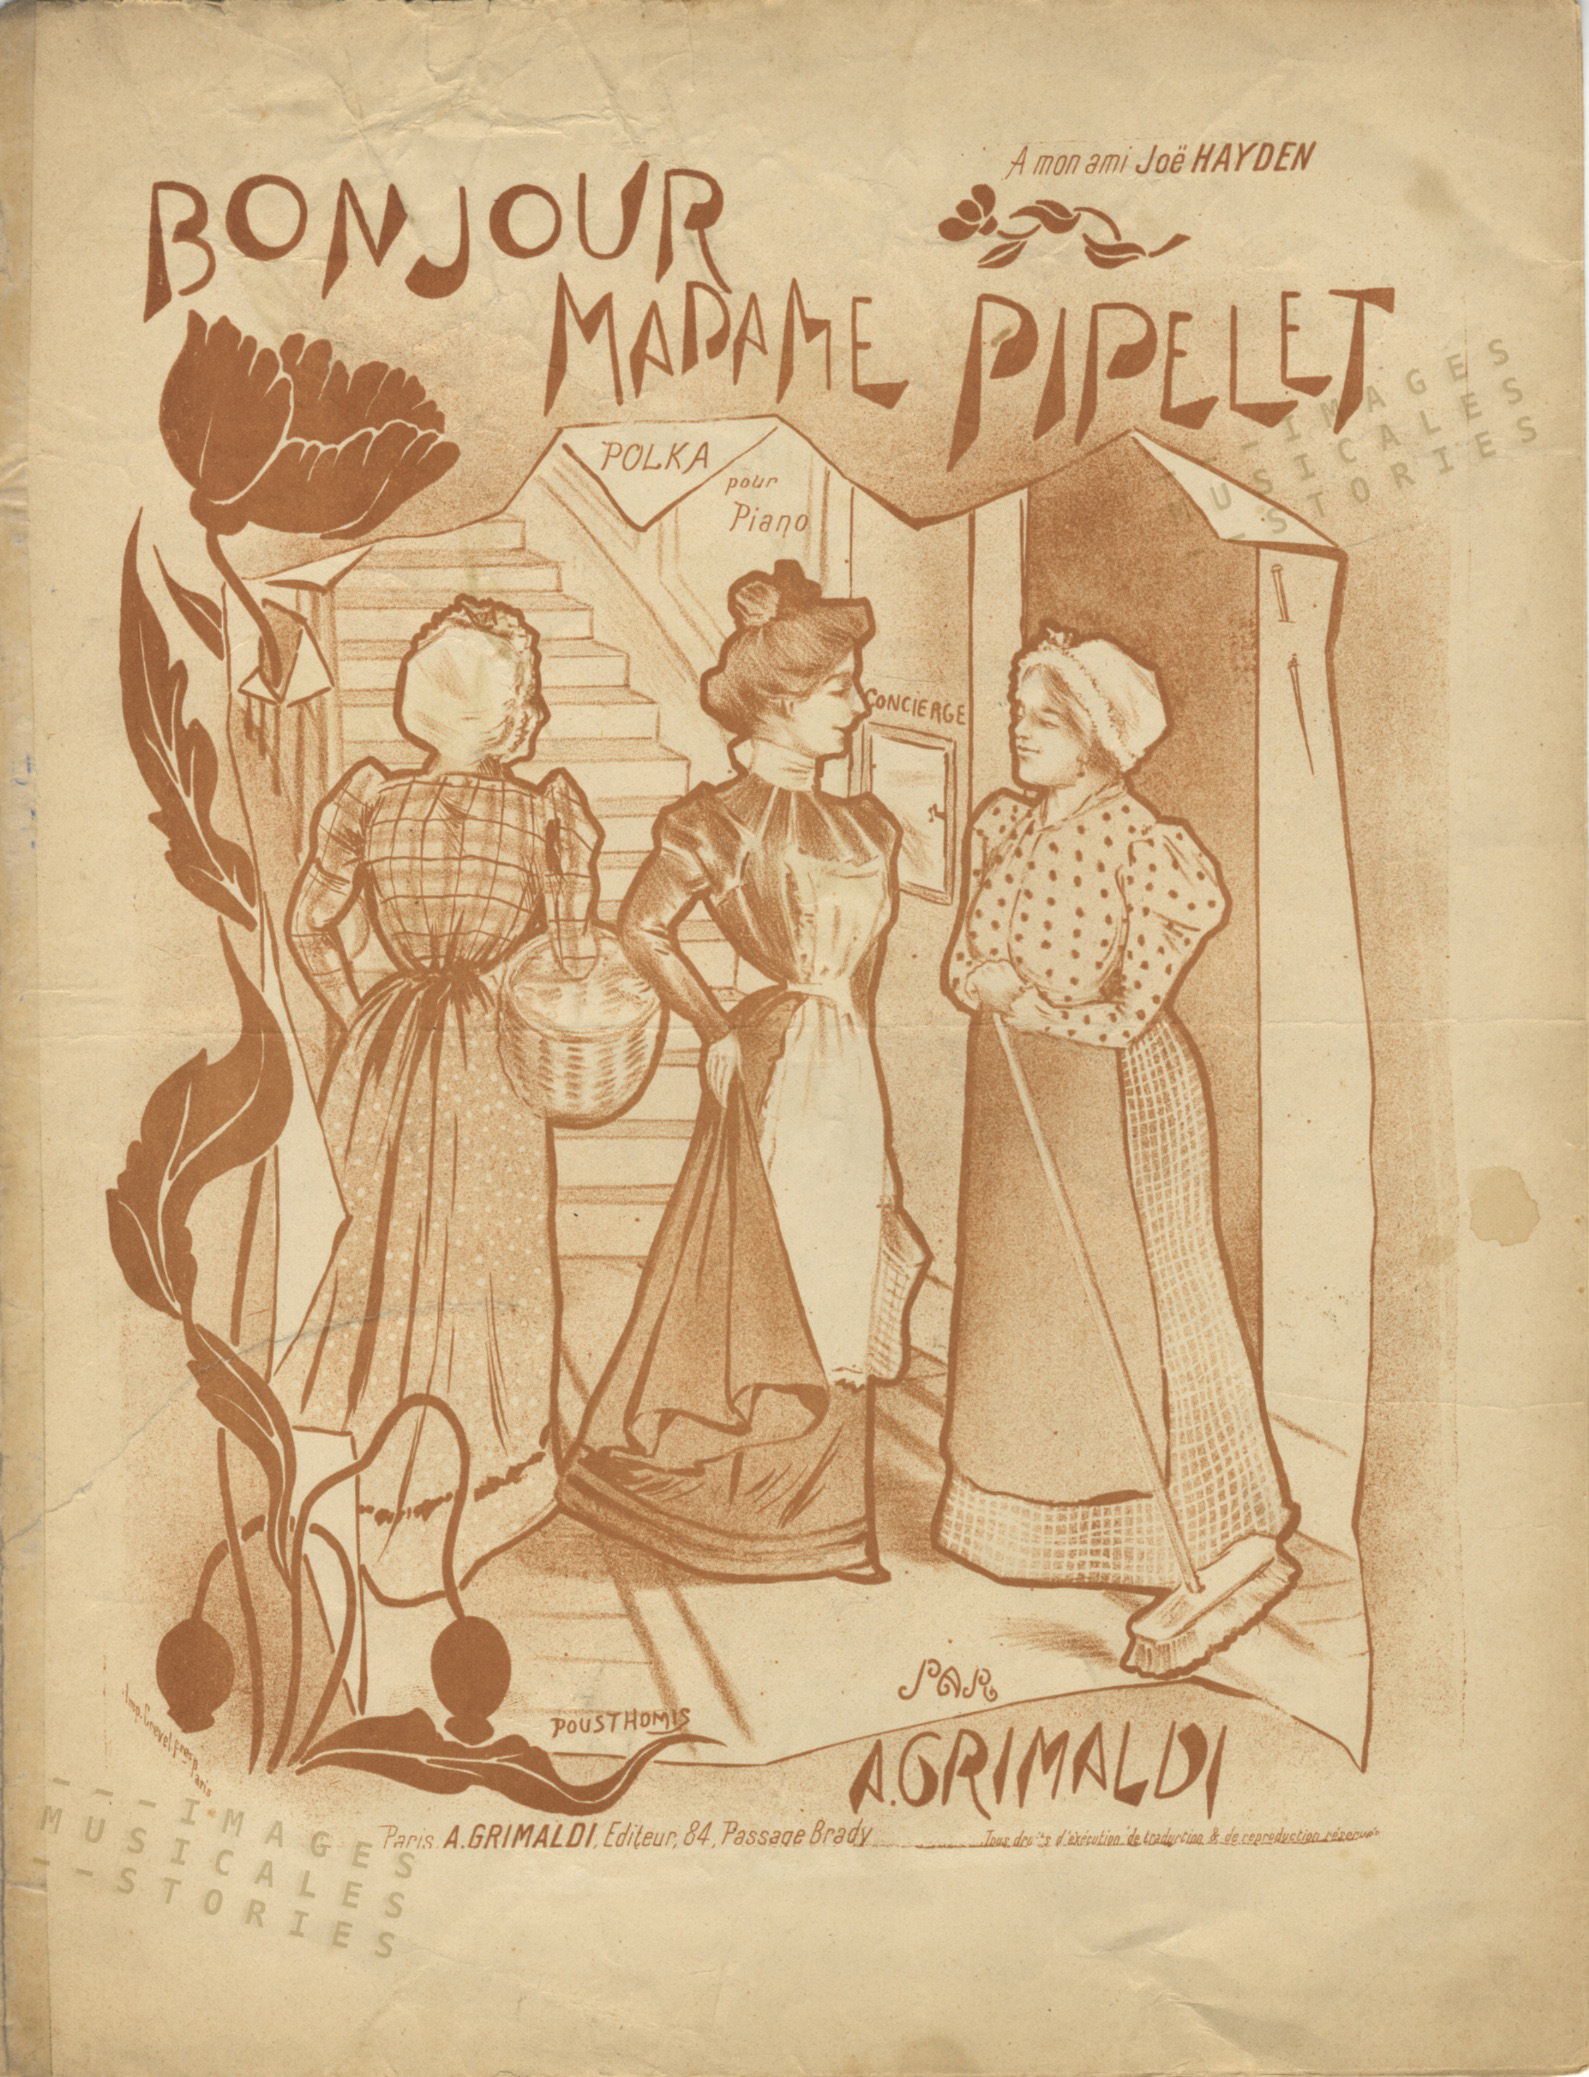 Bonjour Madame Pipelet, cover illustrated by Pousthomis